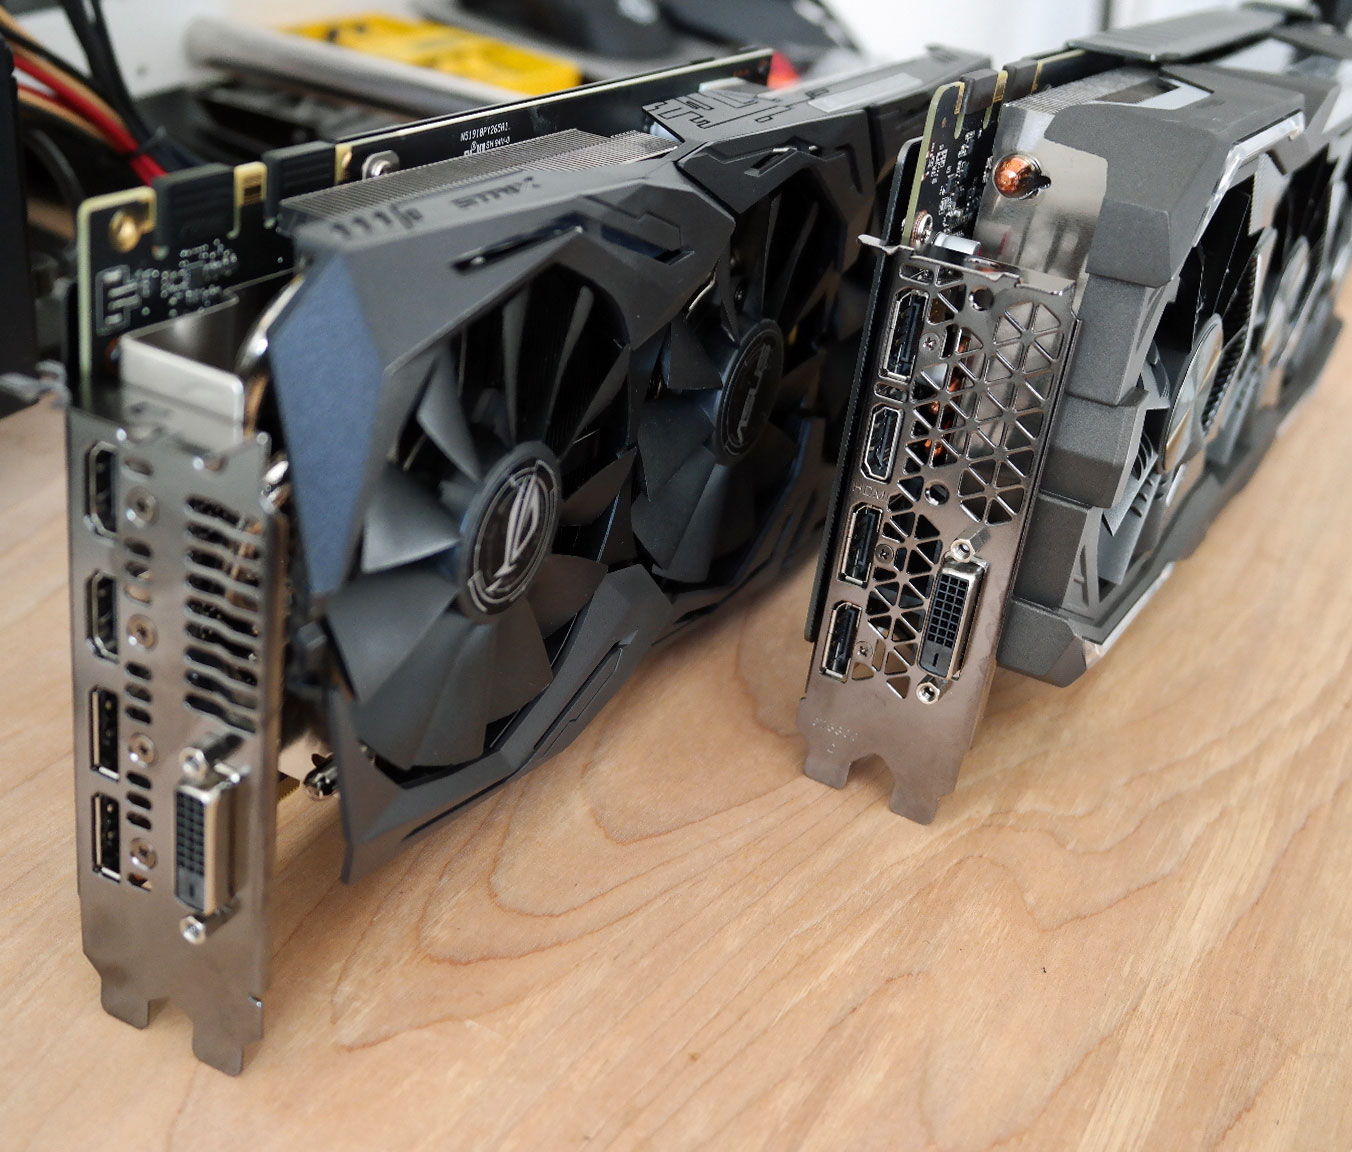 NVIDIA GeForce GTX 1070 Ti Shoot-Out: ASUS Strix And Zotac AMP Extreme